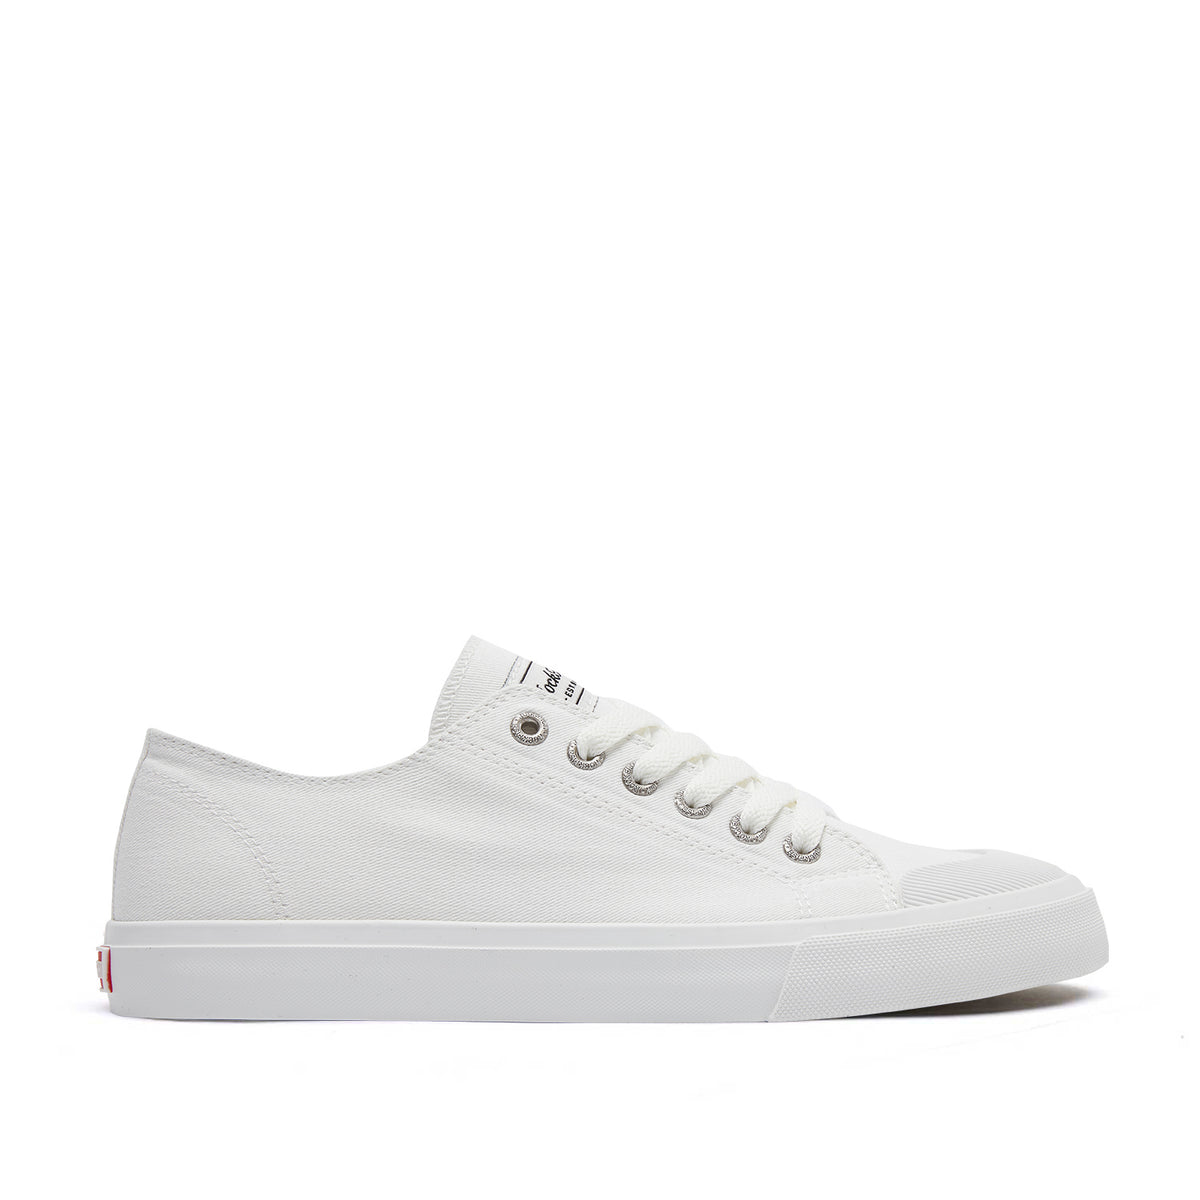 White Canvas Lace Up Waterproof